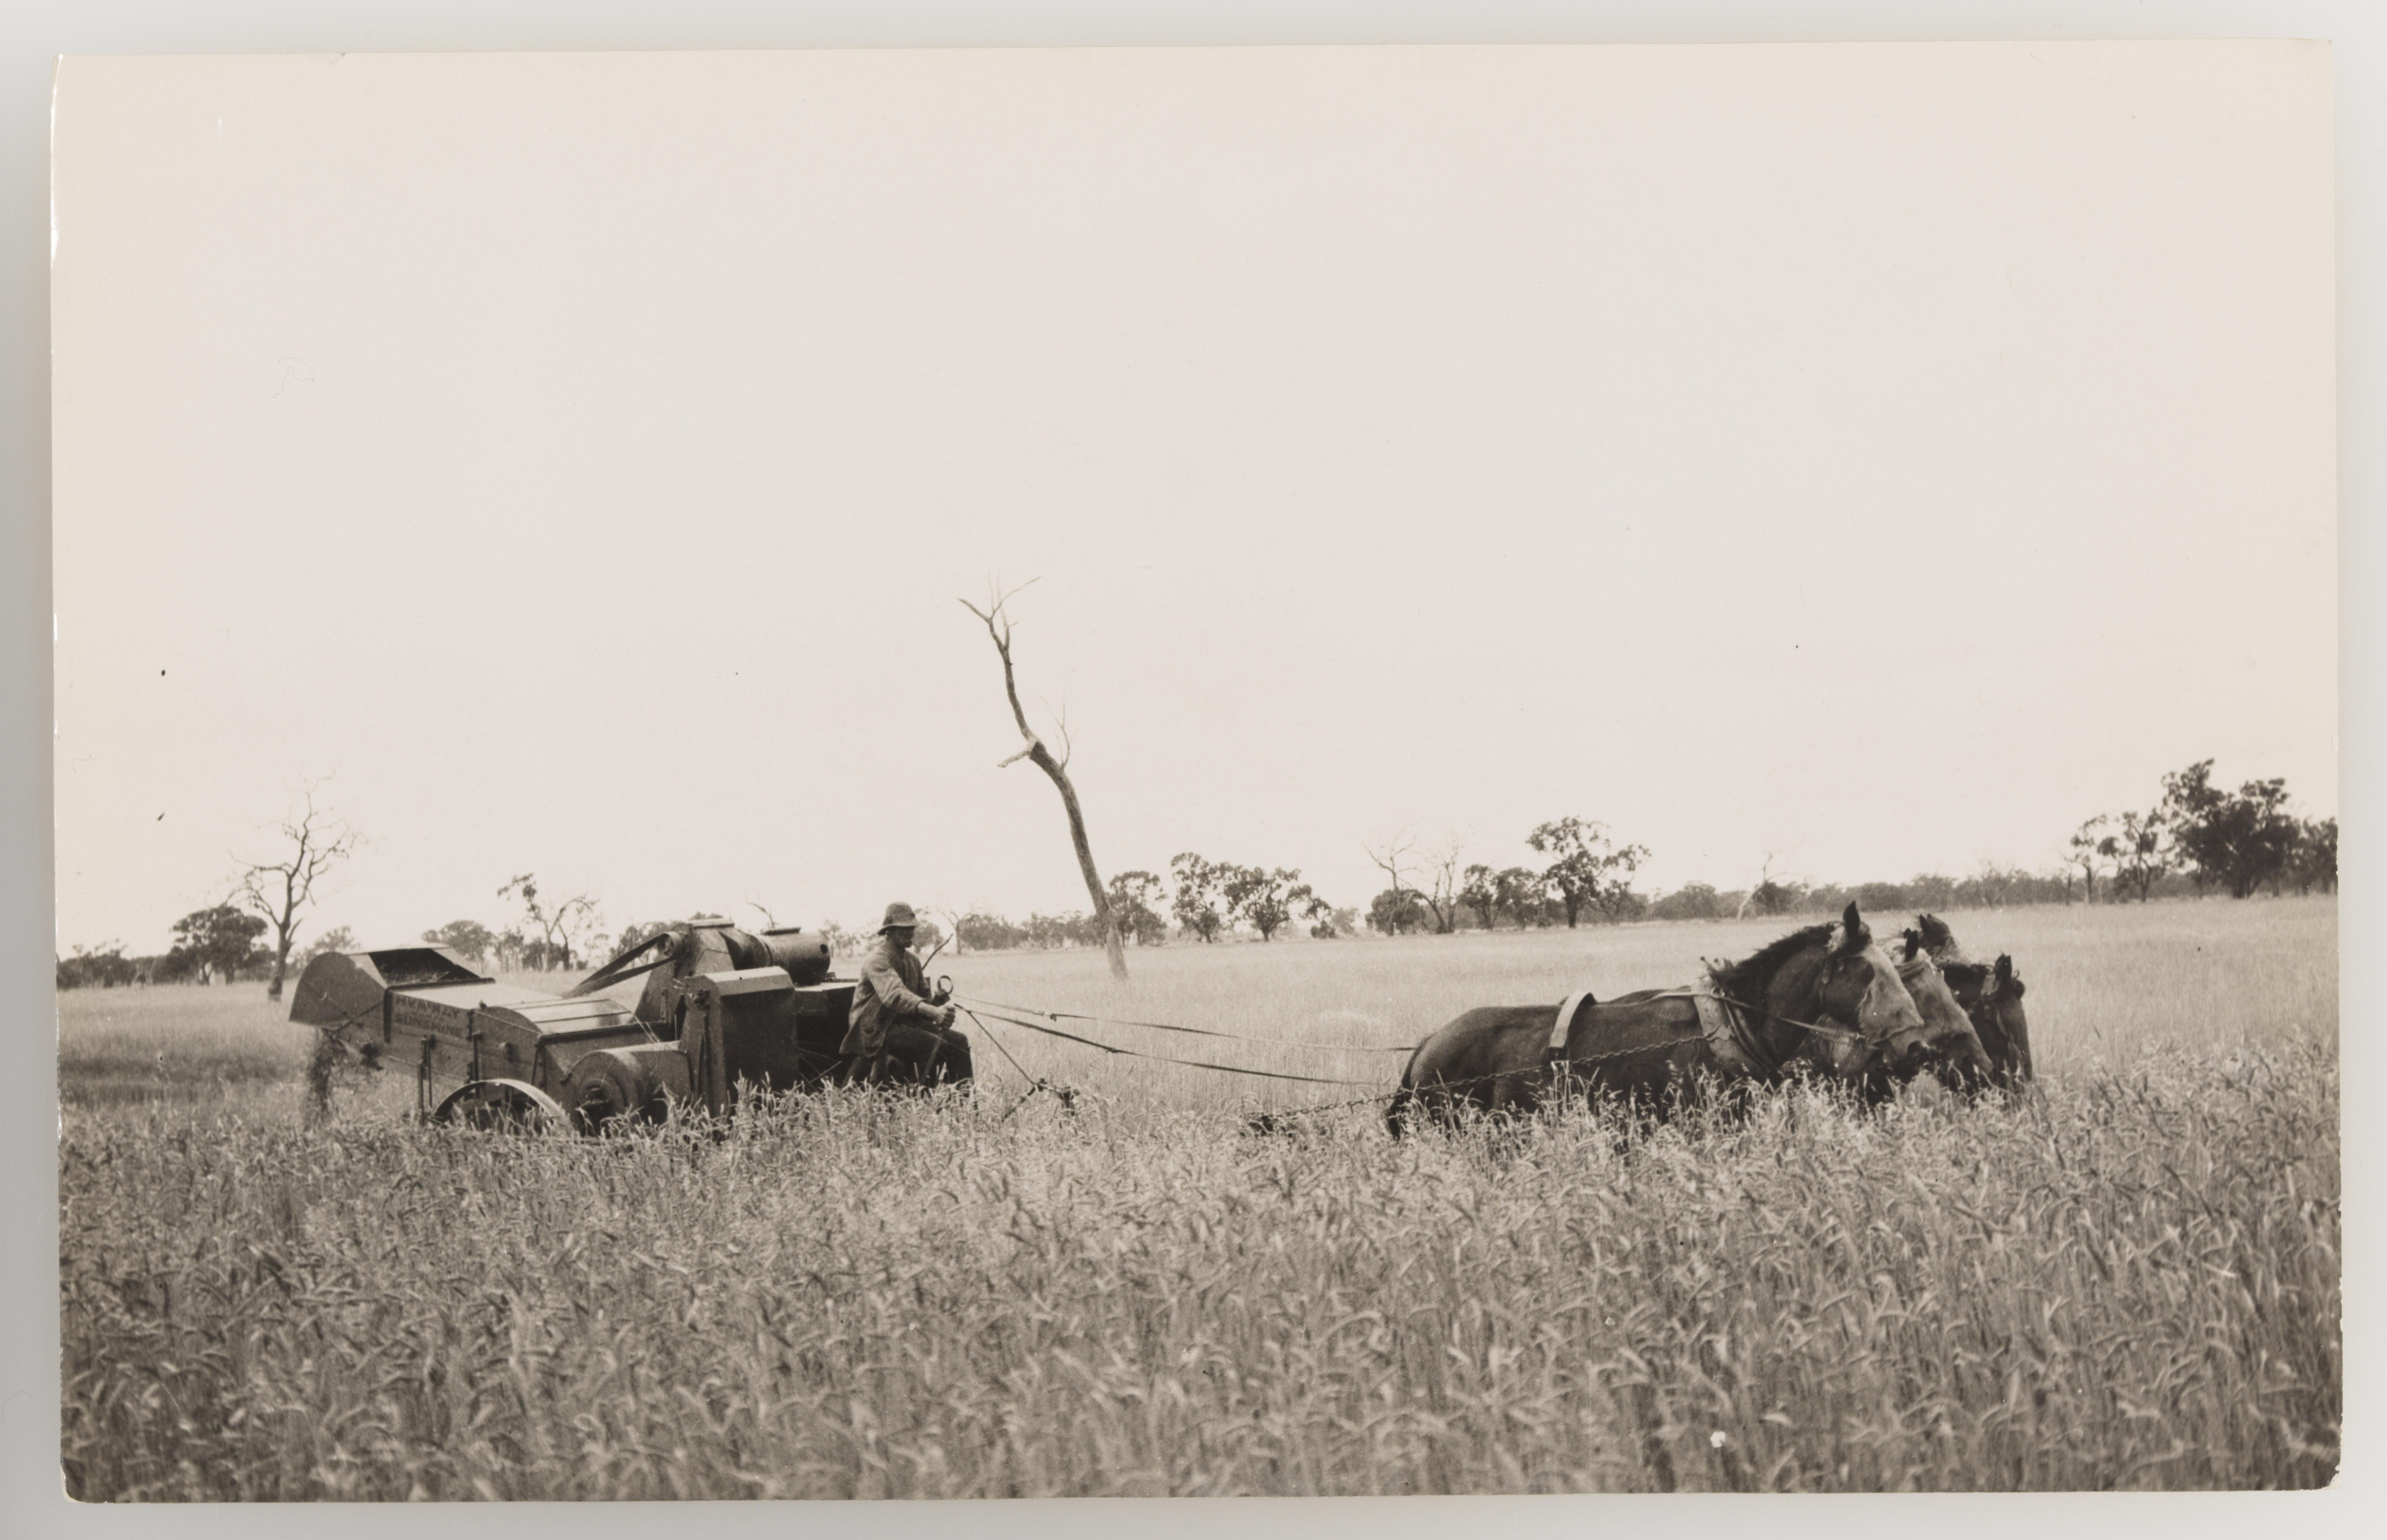 Sunshine header  from Photographs collected by Rev. James Colwell portraying rural and agricultural scenes and activities - Series 03: Harvesting, 1921-1924